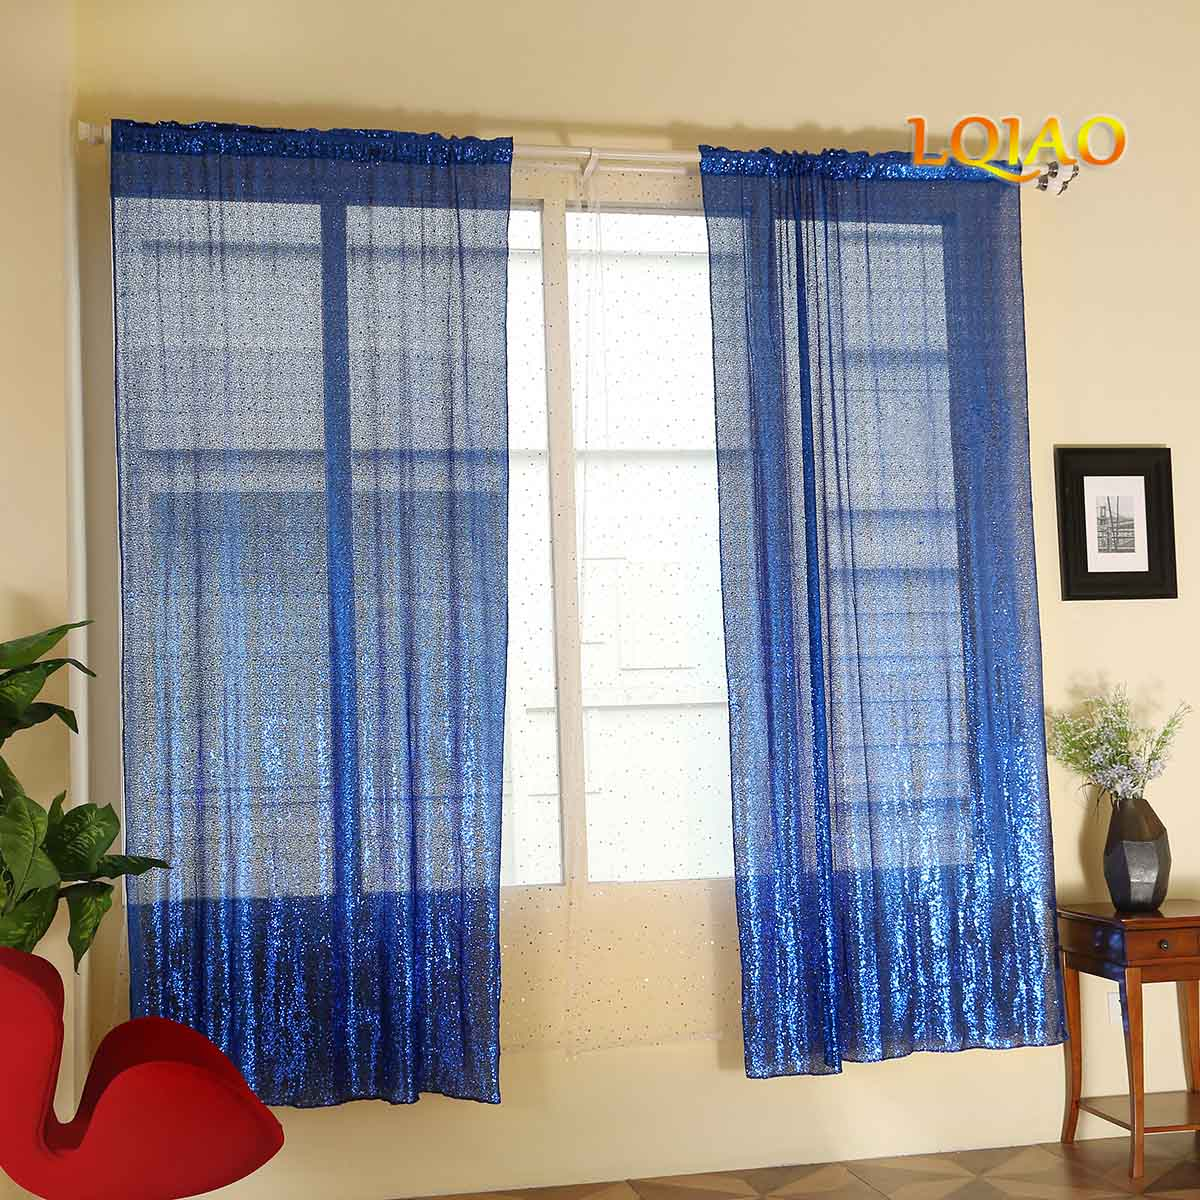 2019 Newest Sequin Curtain 2 Pack Shiny royal blue sequin backdrop Photo Curtains for party wedding